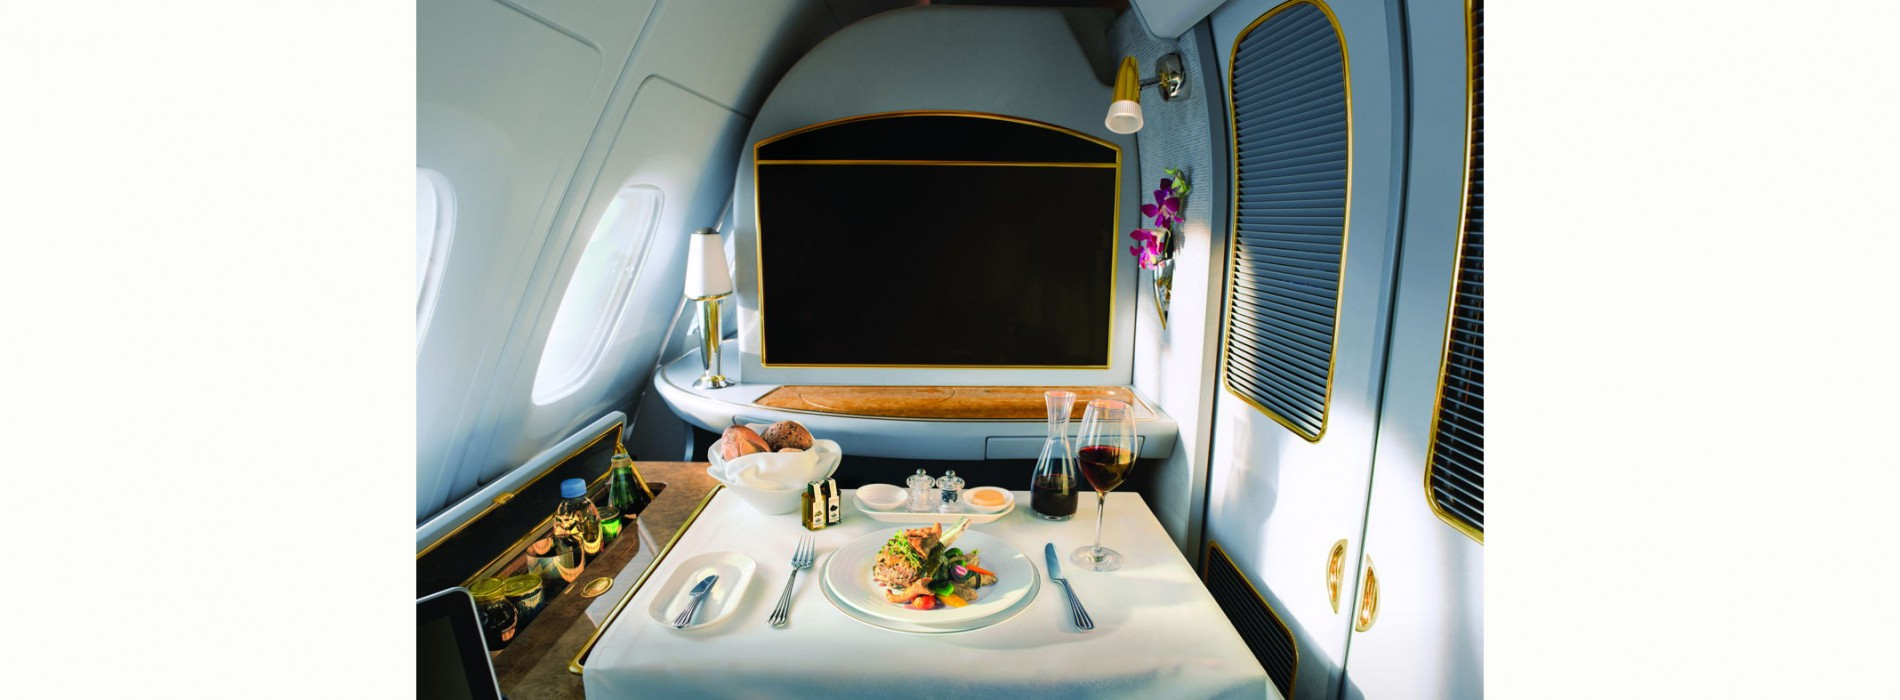 Emirates launches exclusive Food and Wine channels for inflight entertainment system